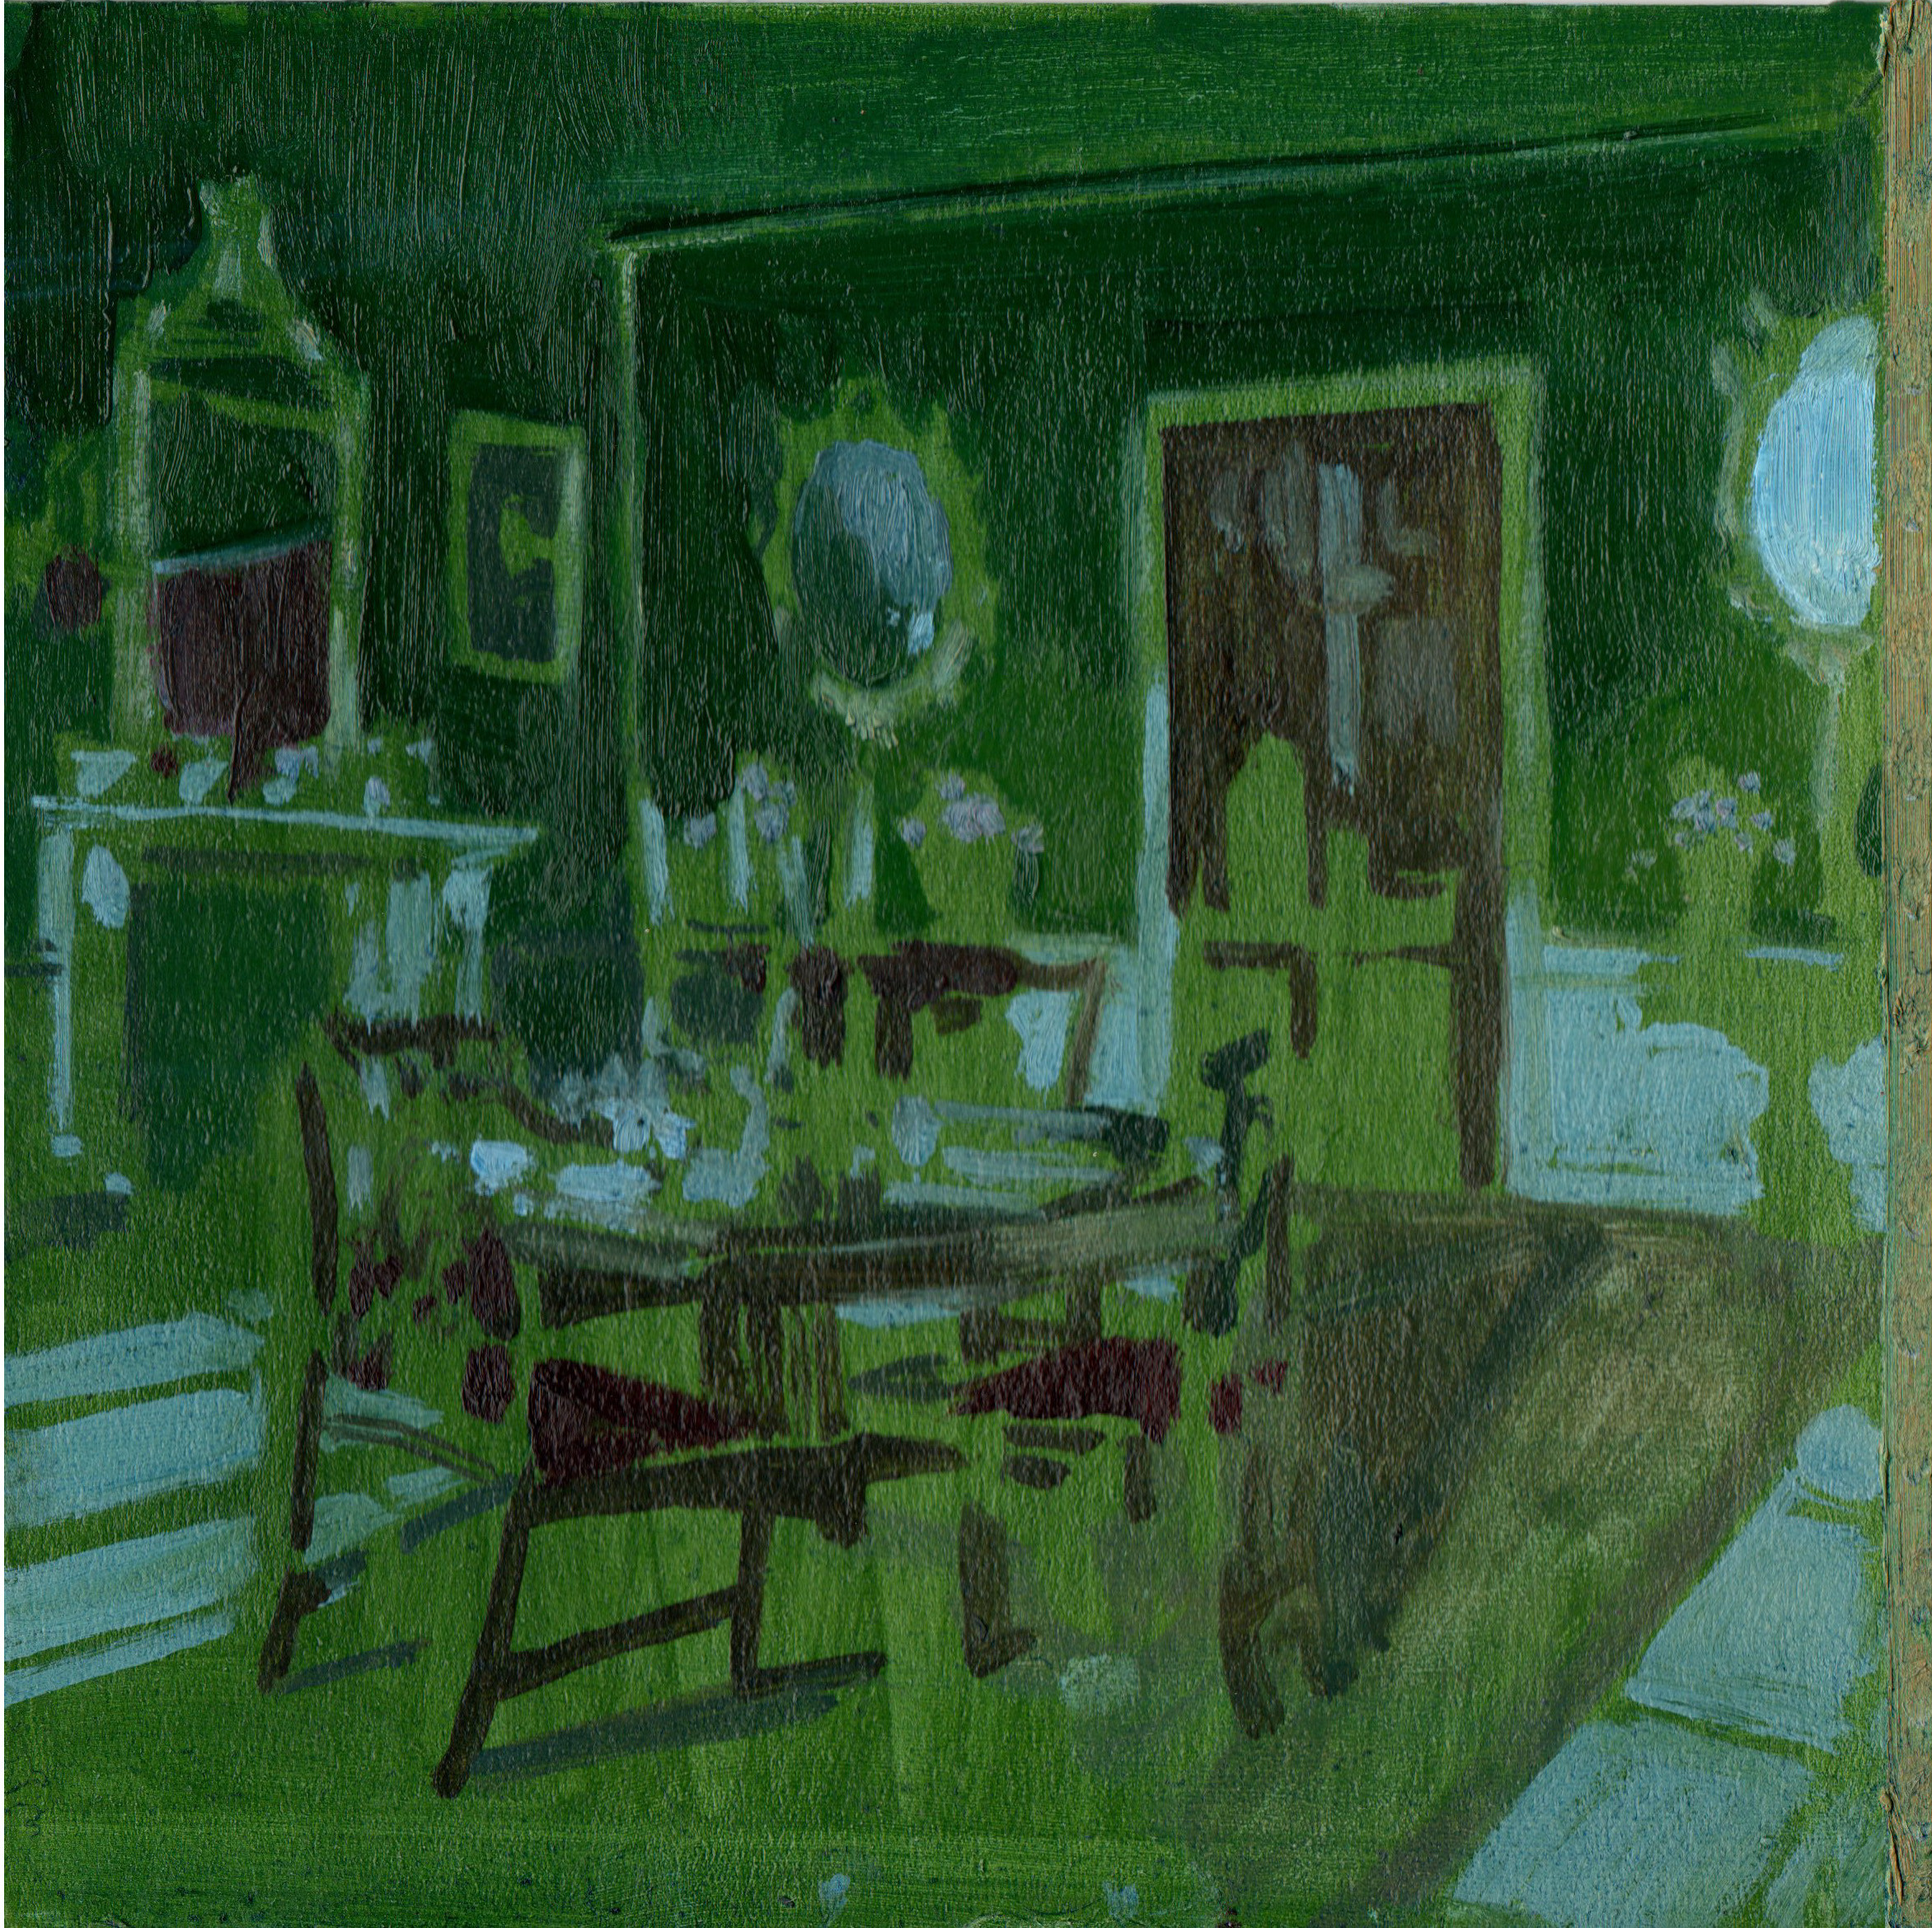 "<span class=""link fancybox-details-link""><a href=""/exhibitions/16/works/artworks2339/"">View Detail Page</a></span><div class=""artist""><strong>Eleanor Watson</strong></div><div class=""title""><em>Green Afternoon</em>, 2018</div><div class=""medium"">Oil on Board</div><div class=""dimensions"">20 x 20 cm<br>7 7/8 x 7 7/8 in.</div>"